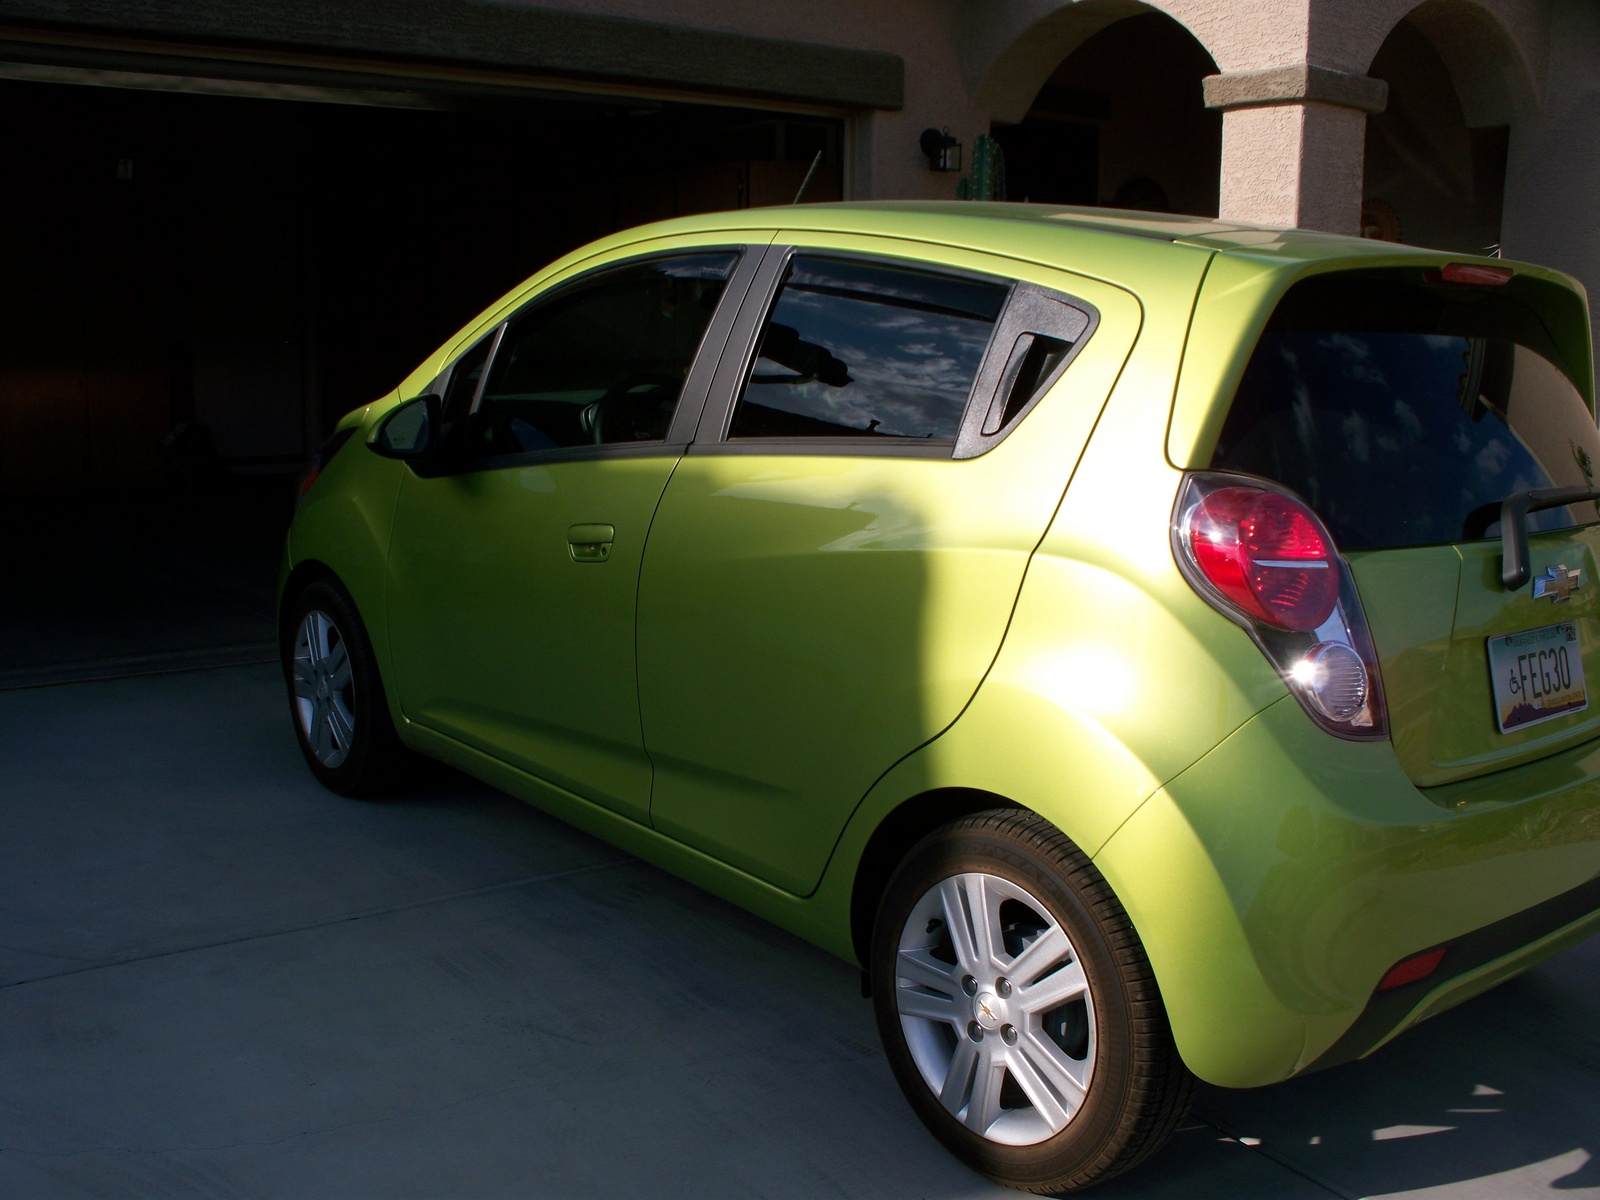 Chevy Dealers In Ma >> New 2014 Chevrolet Spark For Sale - CarGurus